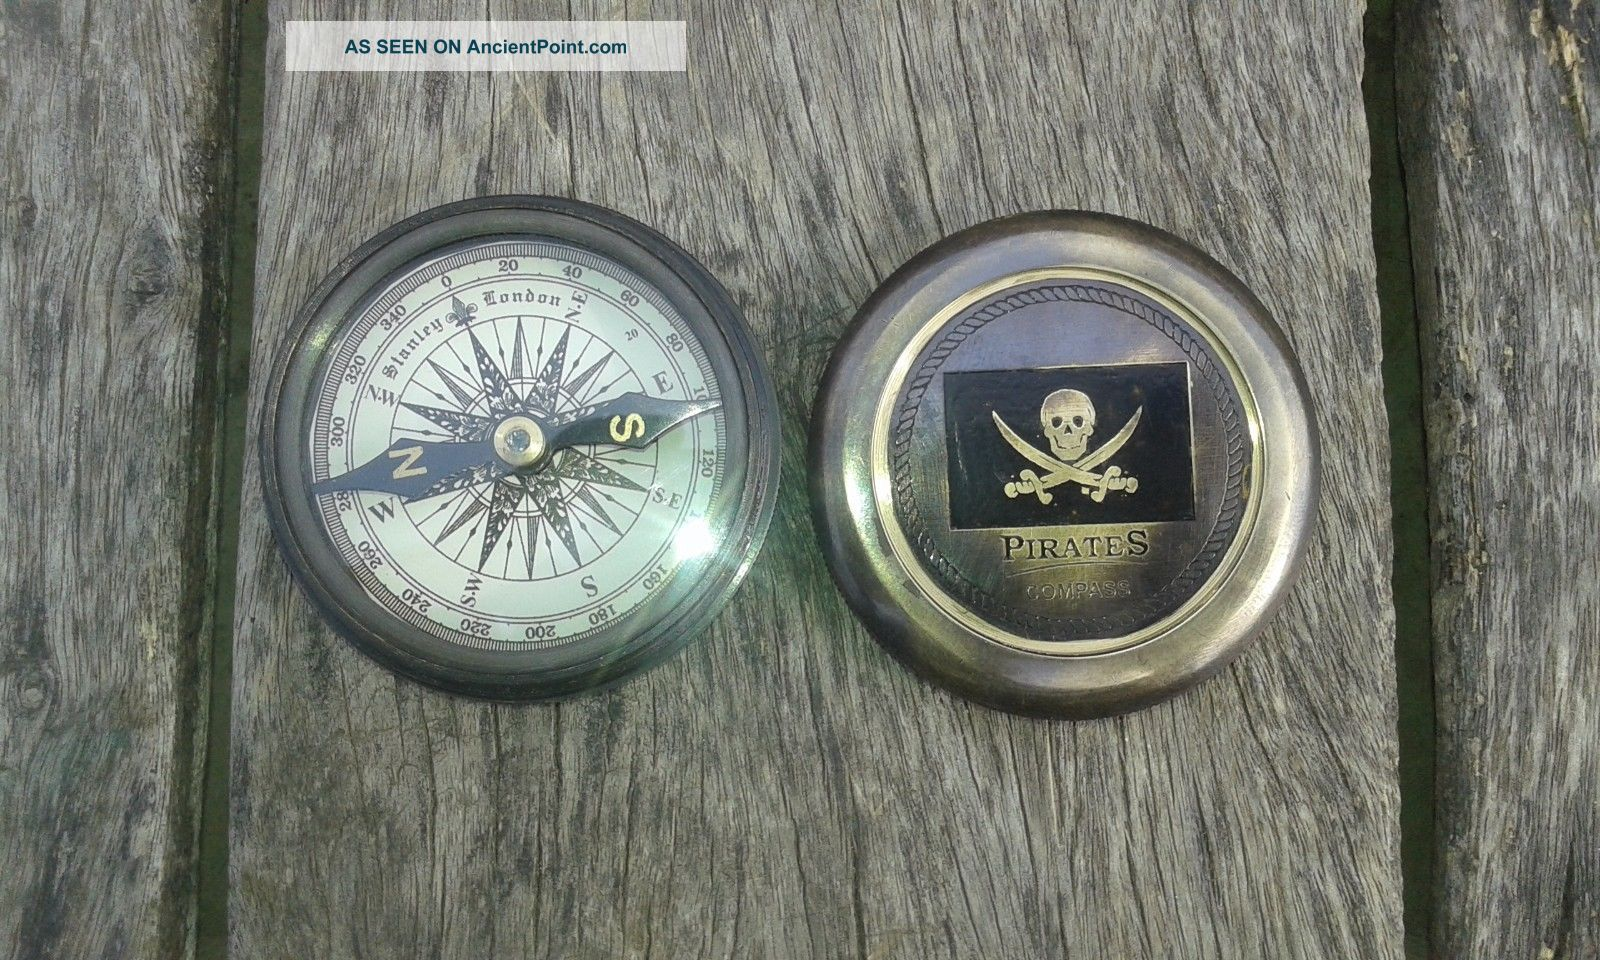 Antique Vintage Nautical Pirates - Compass - Poem - Compass Solid Brass Compasses photo